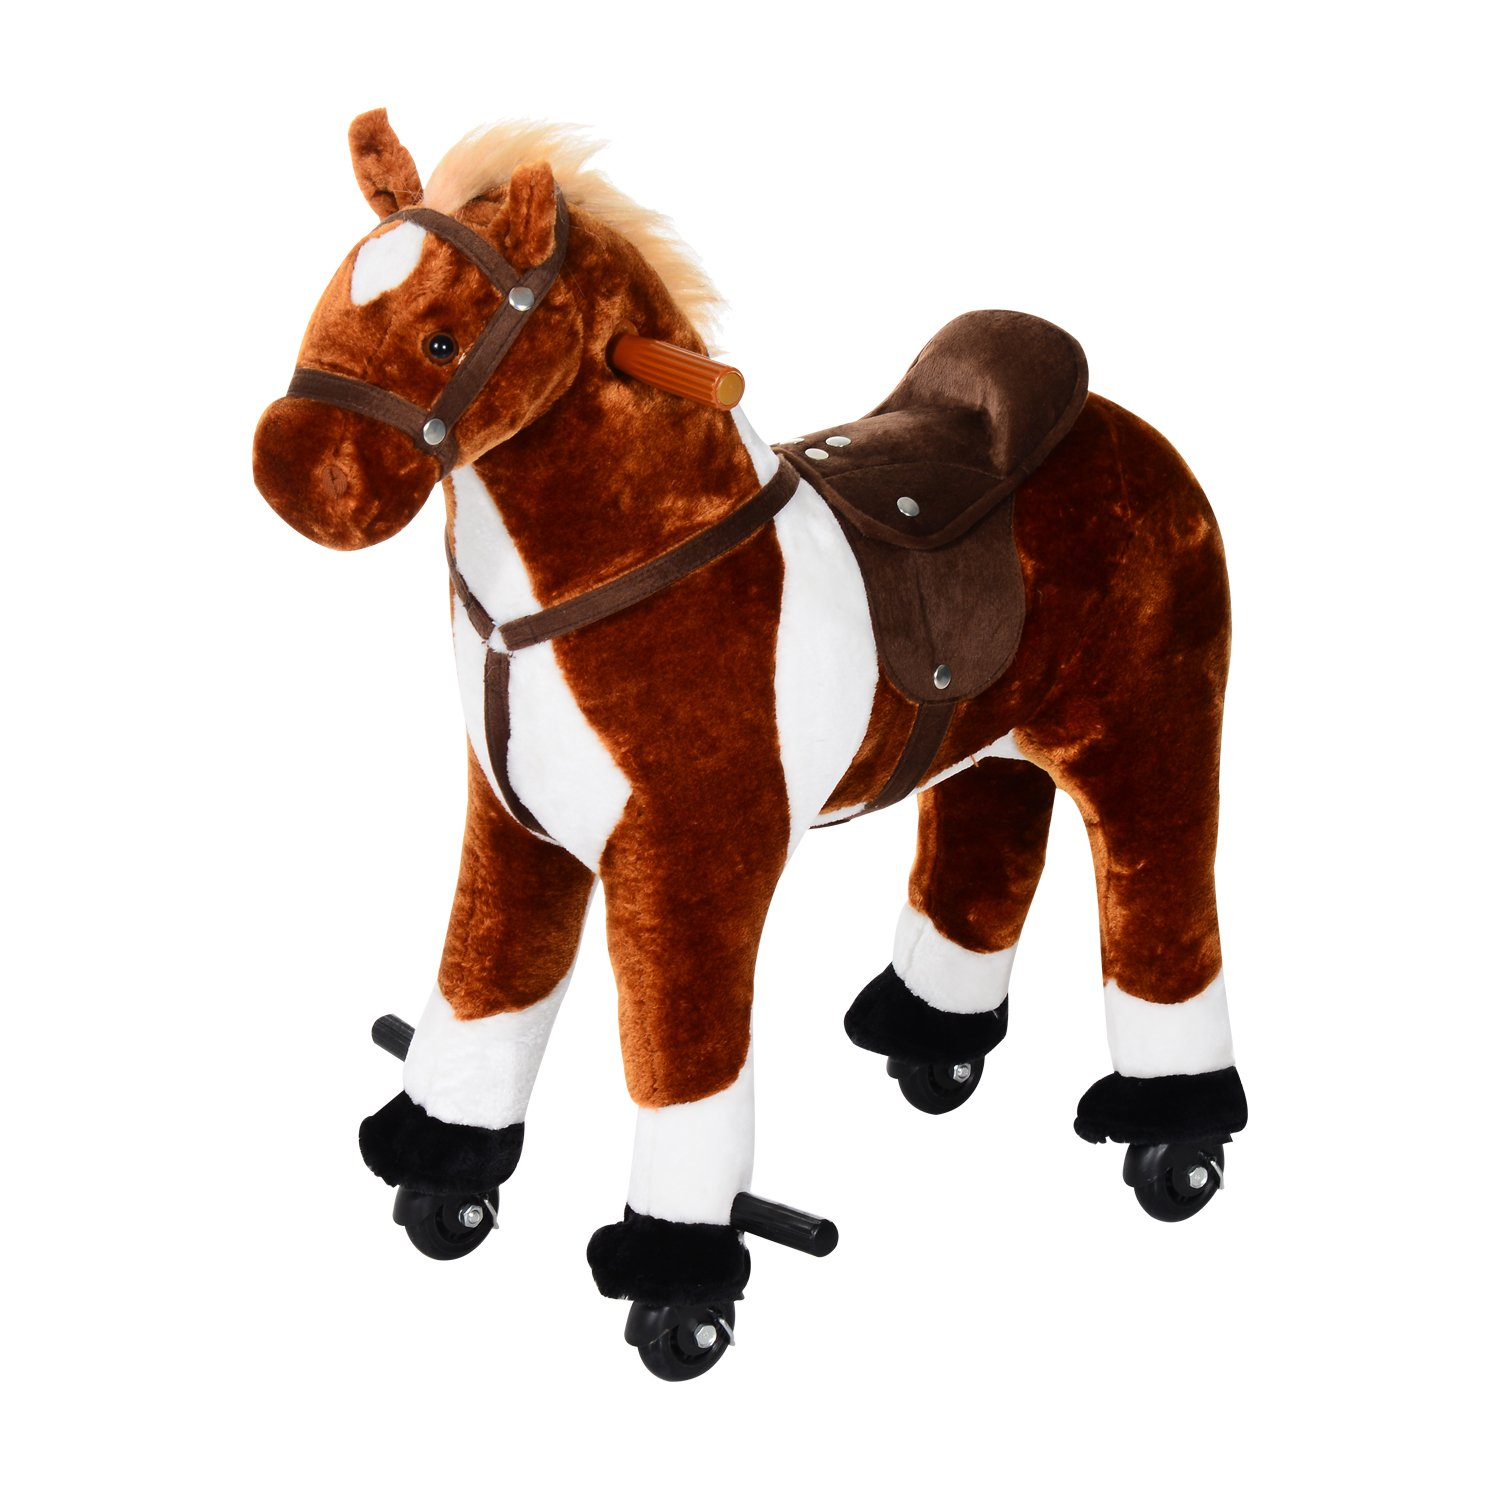 "Qaba 30""H Kids Plush Ride On Toy Walking Horse with Wheels and Realistic Sounds - Brown"